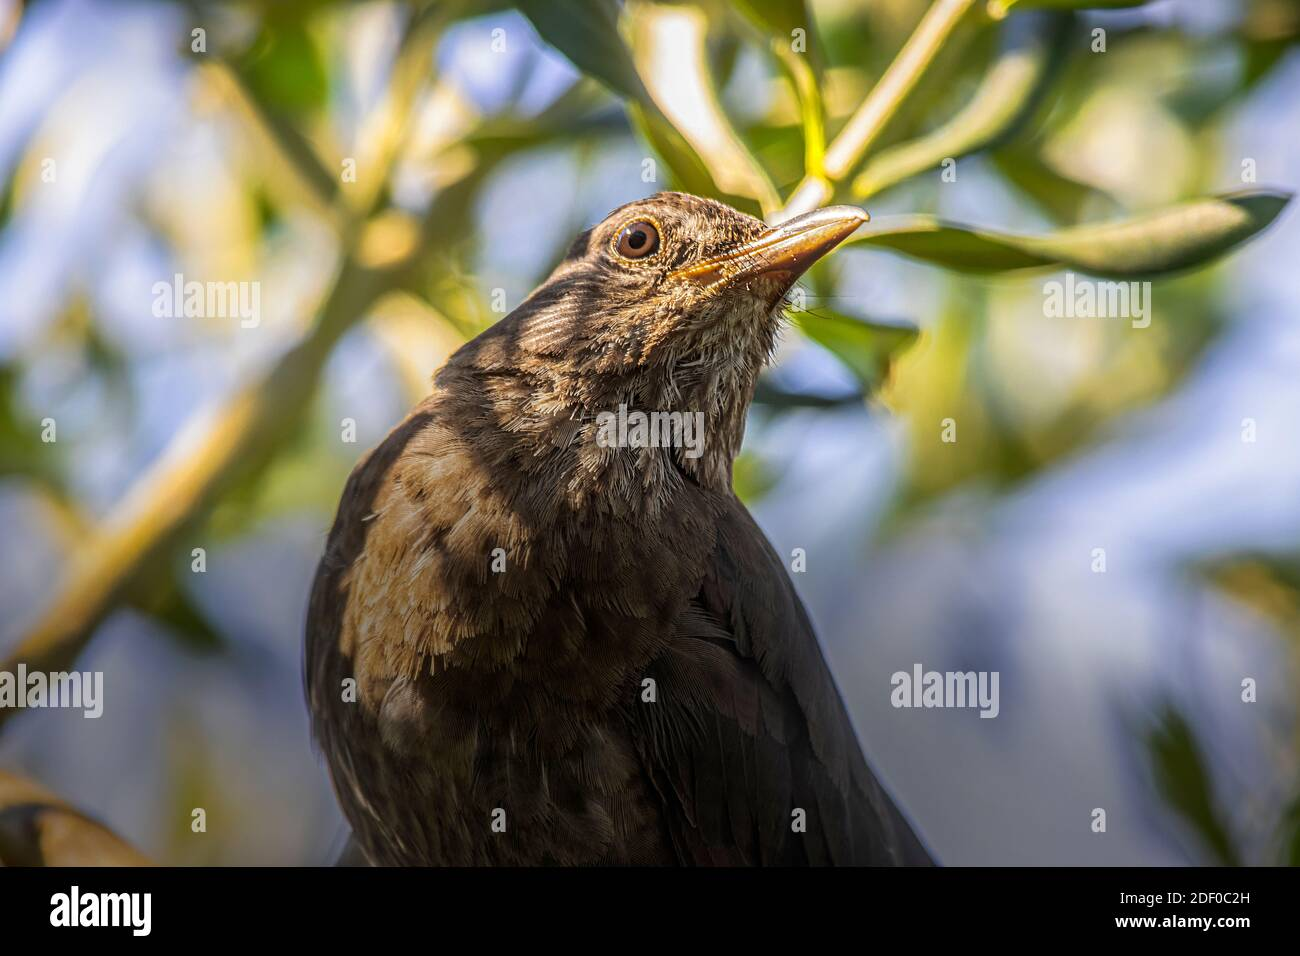 Very Close Portrait of Female Common Blackbird on Olive Tree.. Mixed Sunlight Trough Olive Branches. July Photo in Slovenia. Stock Photo